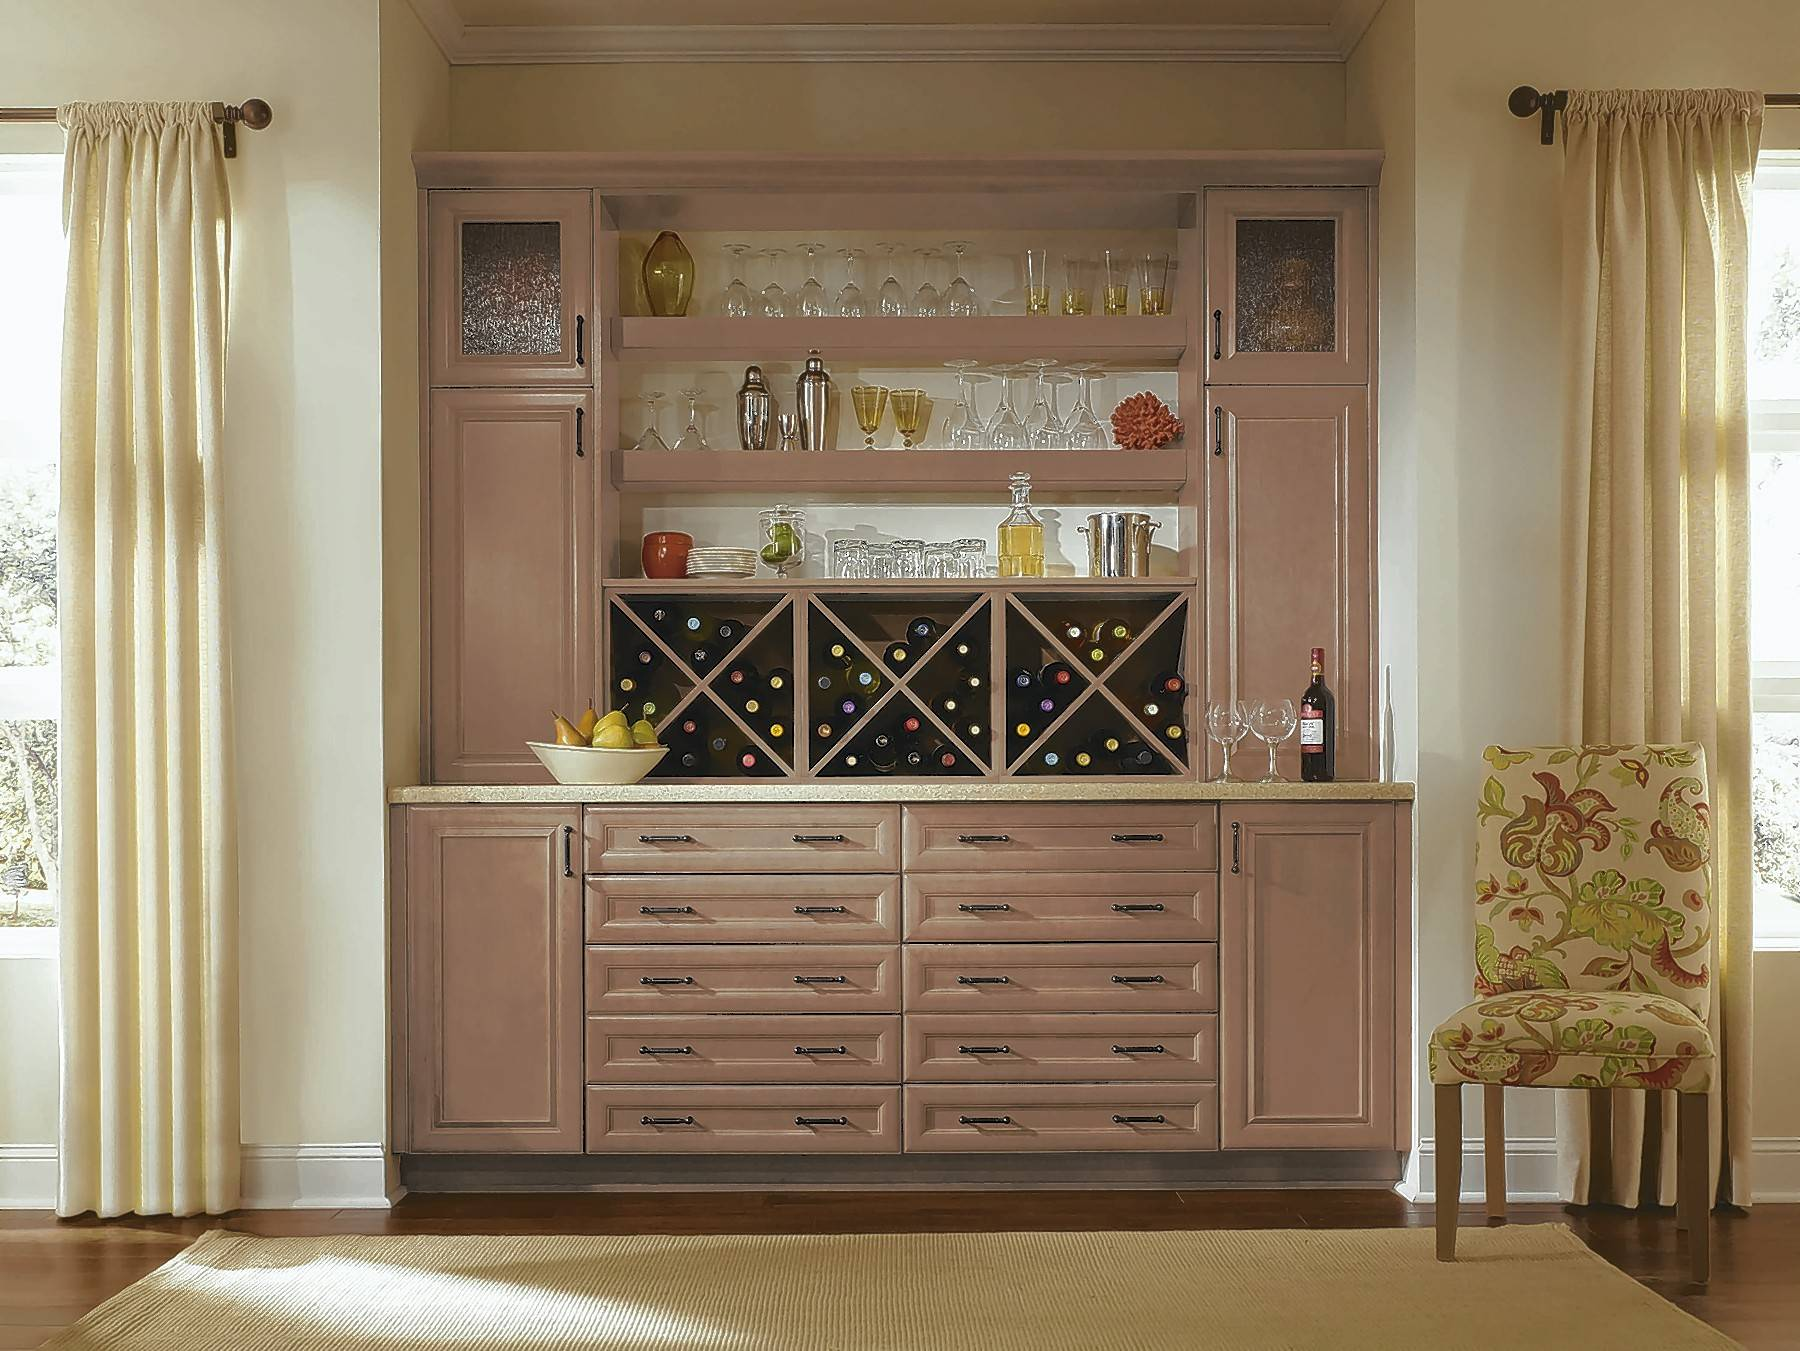 By designing new custom cabinets, you can upgrade your home and add a personalized touch.